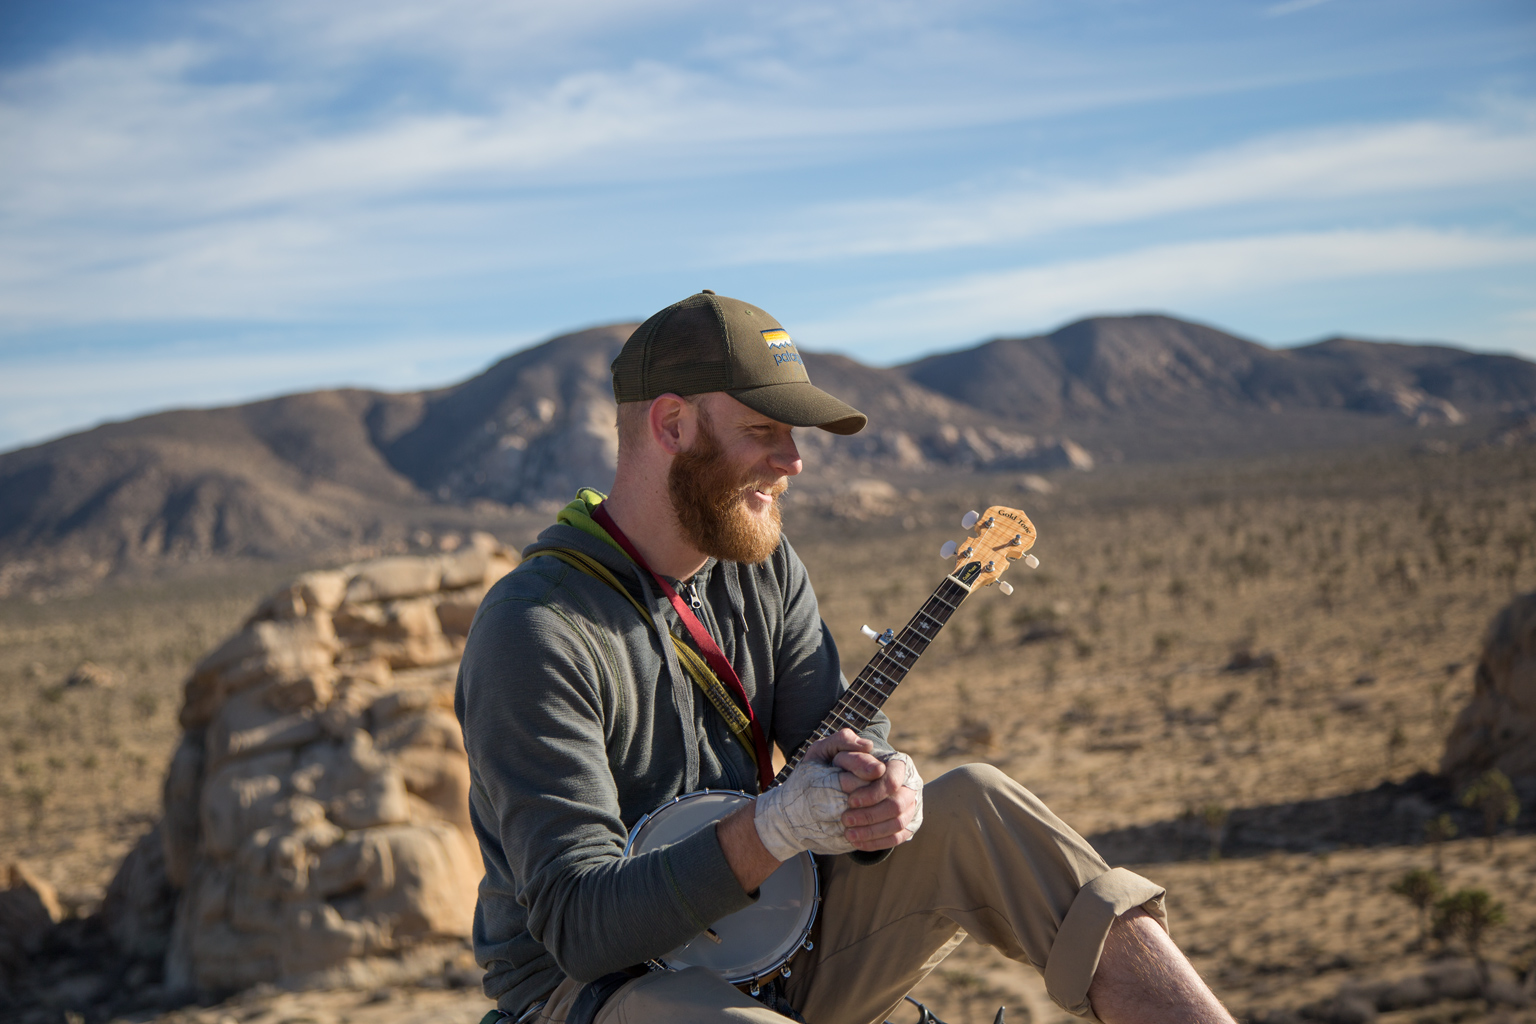 Craig playing banjo on top of Chimney Rock, Joshua Tree